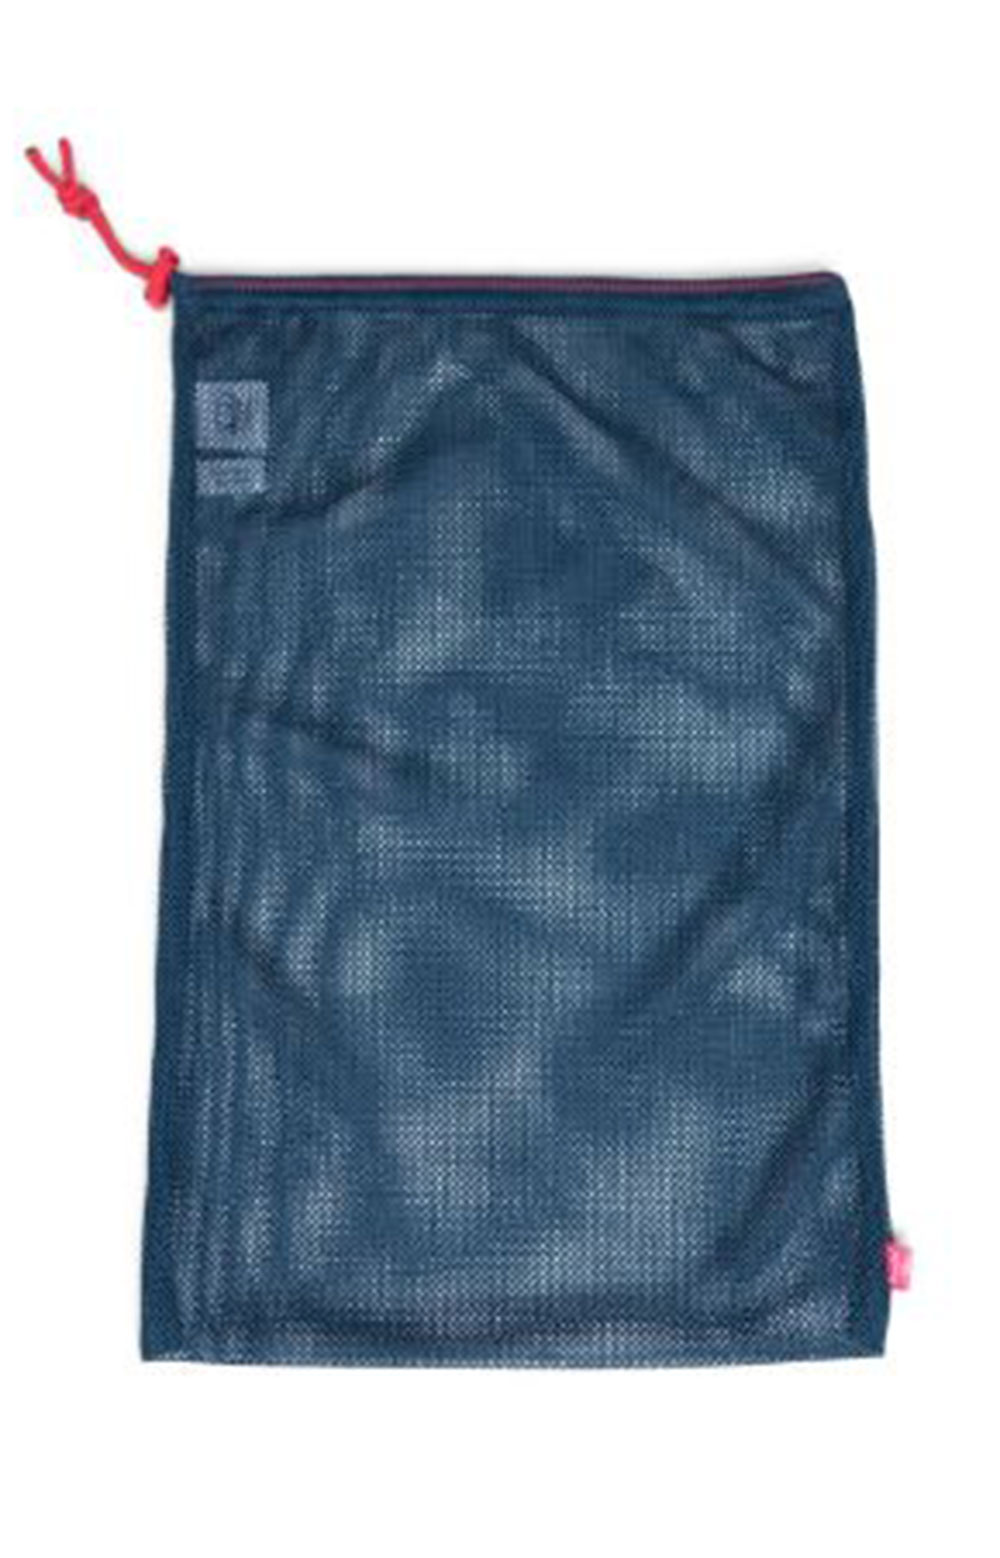 Laundry / Shoe Bag Set - Navy/Red 4